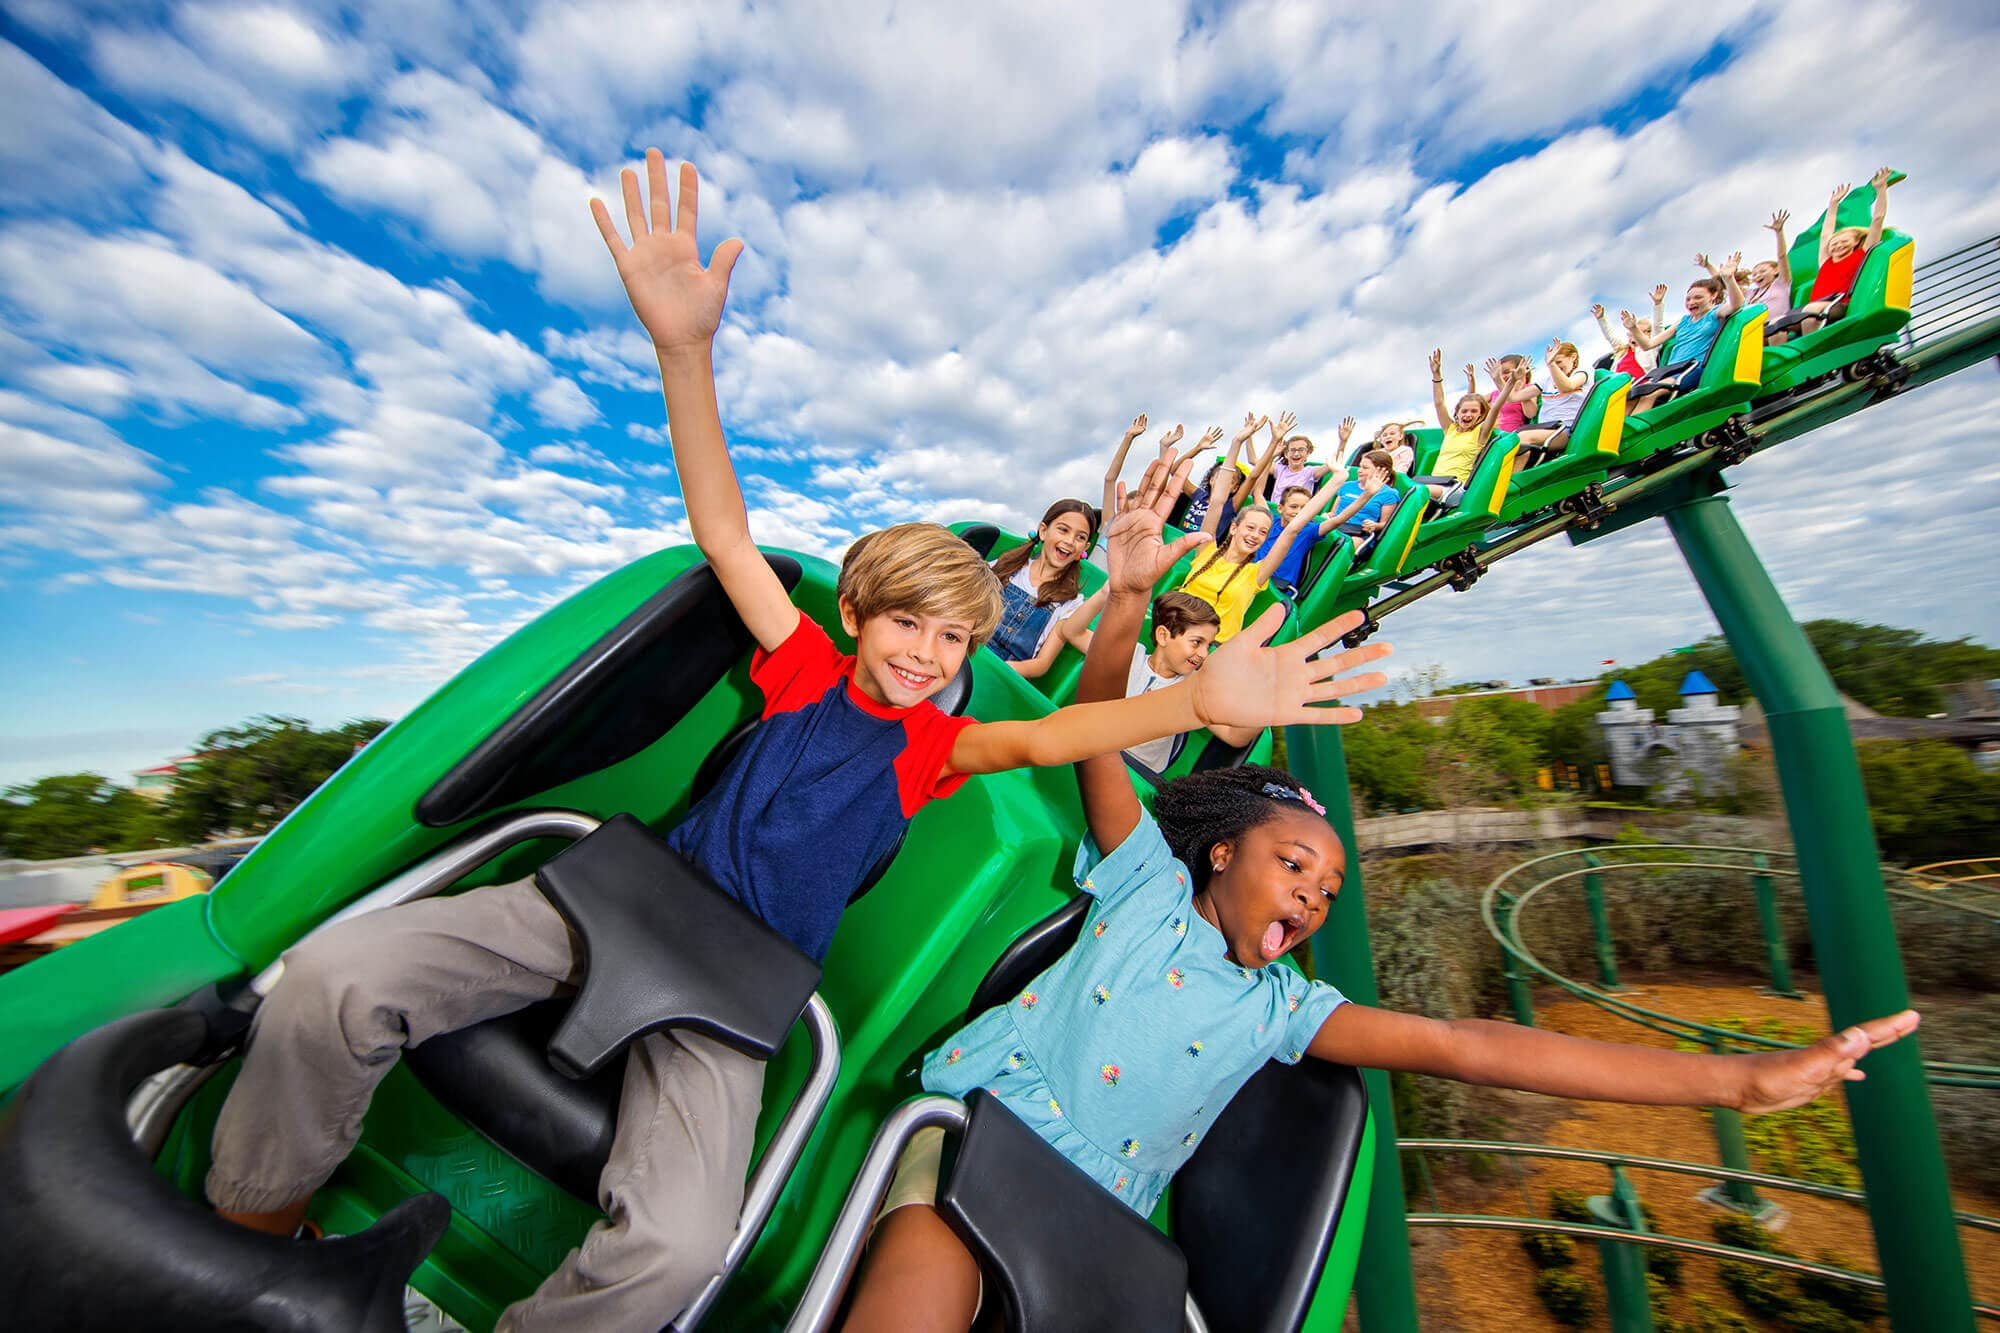 kids with hands up on Dragon Coaster Ride at LEGOLAND Florida Resort in Winter Haven, FL